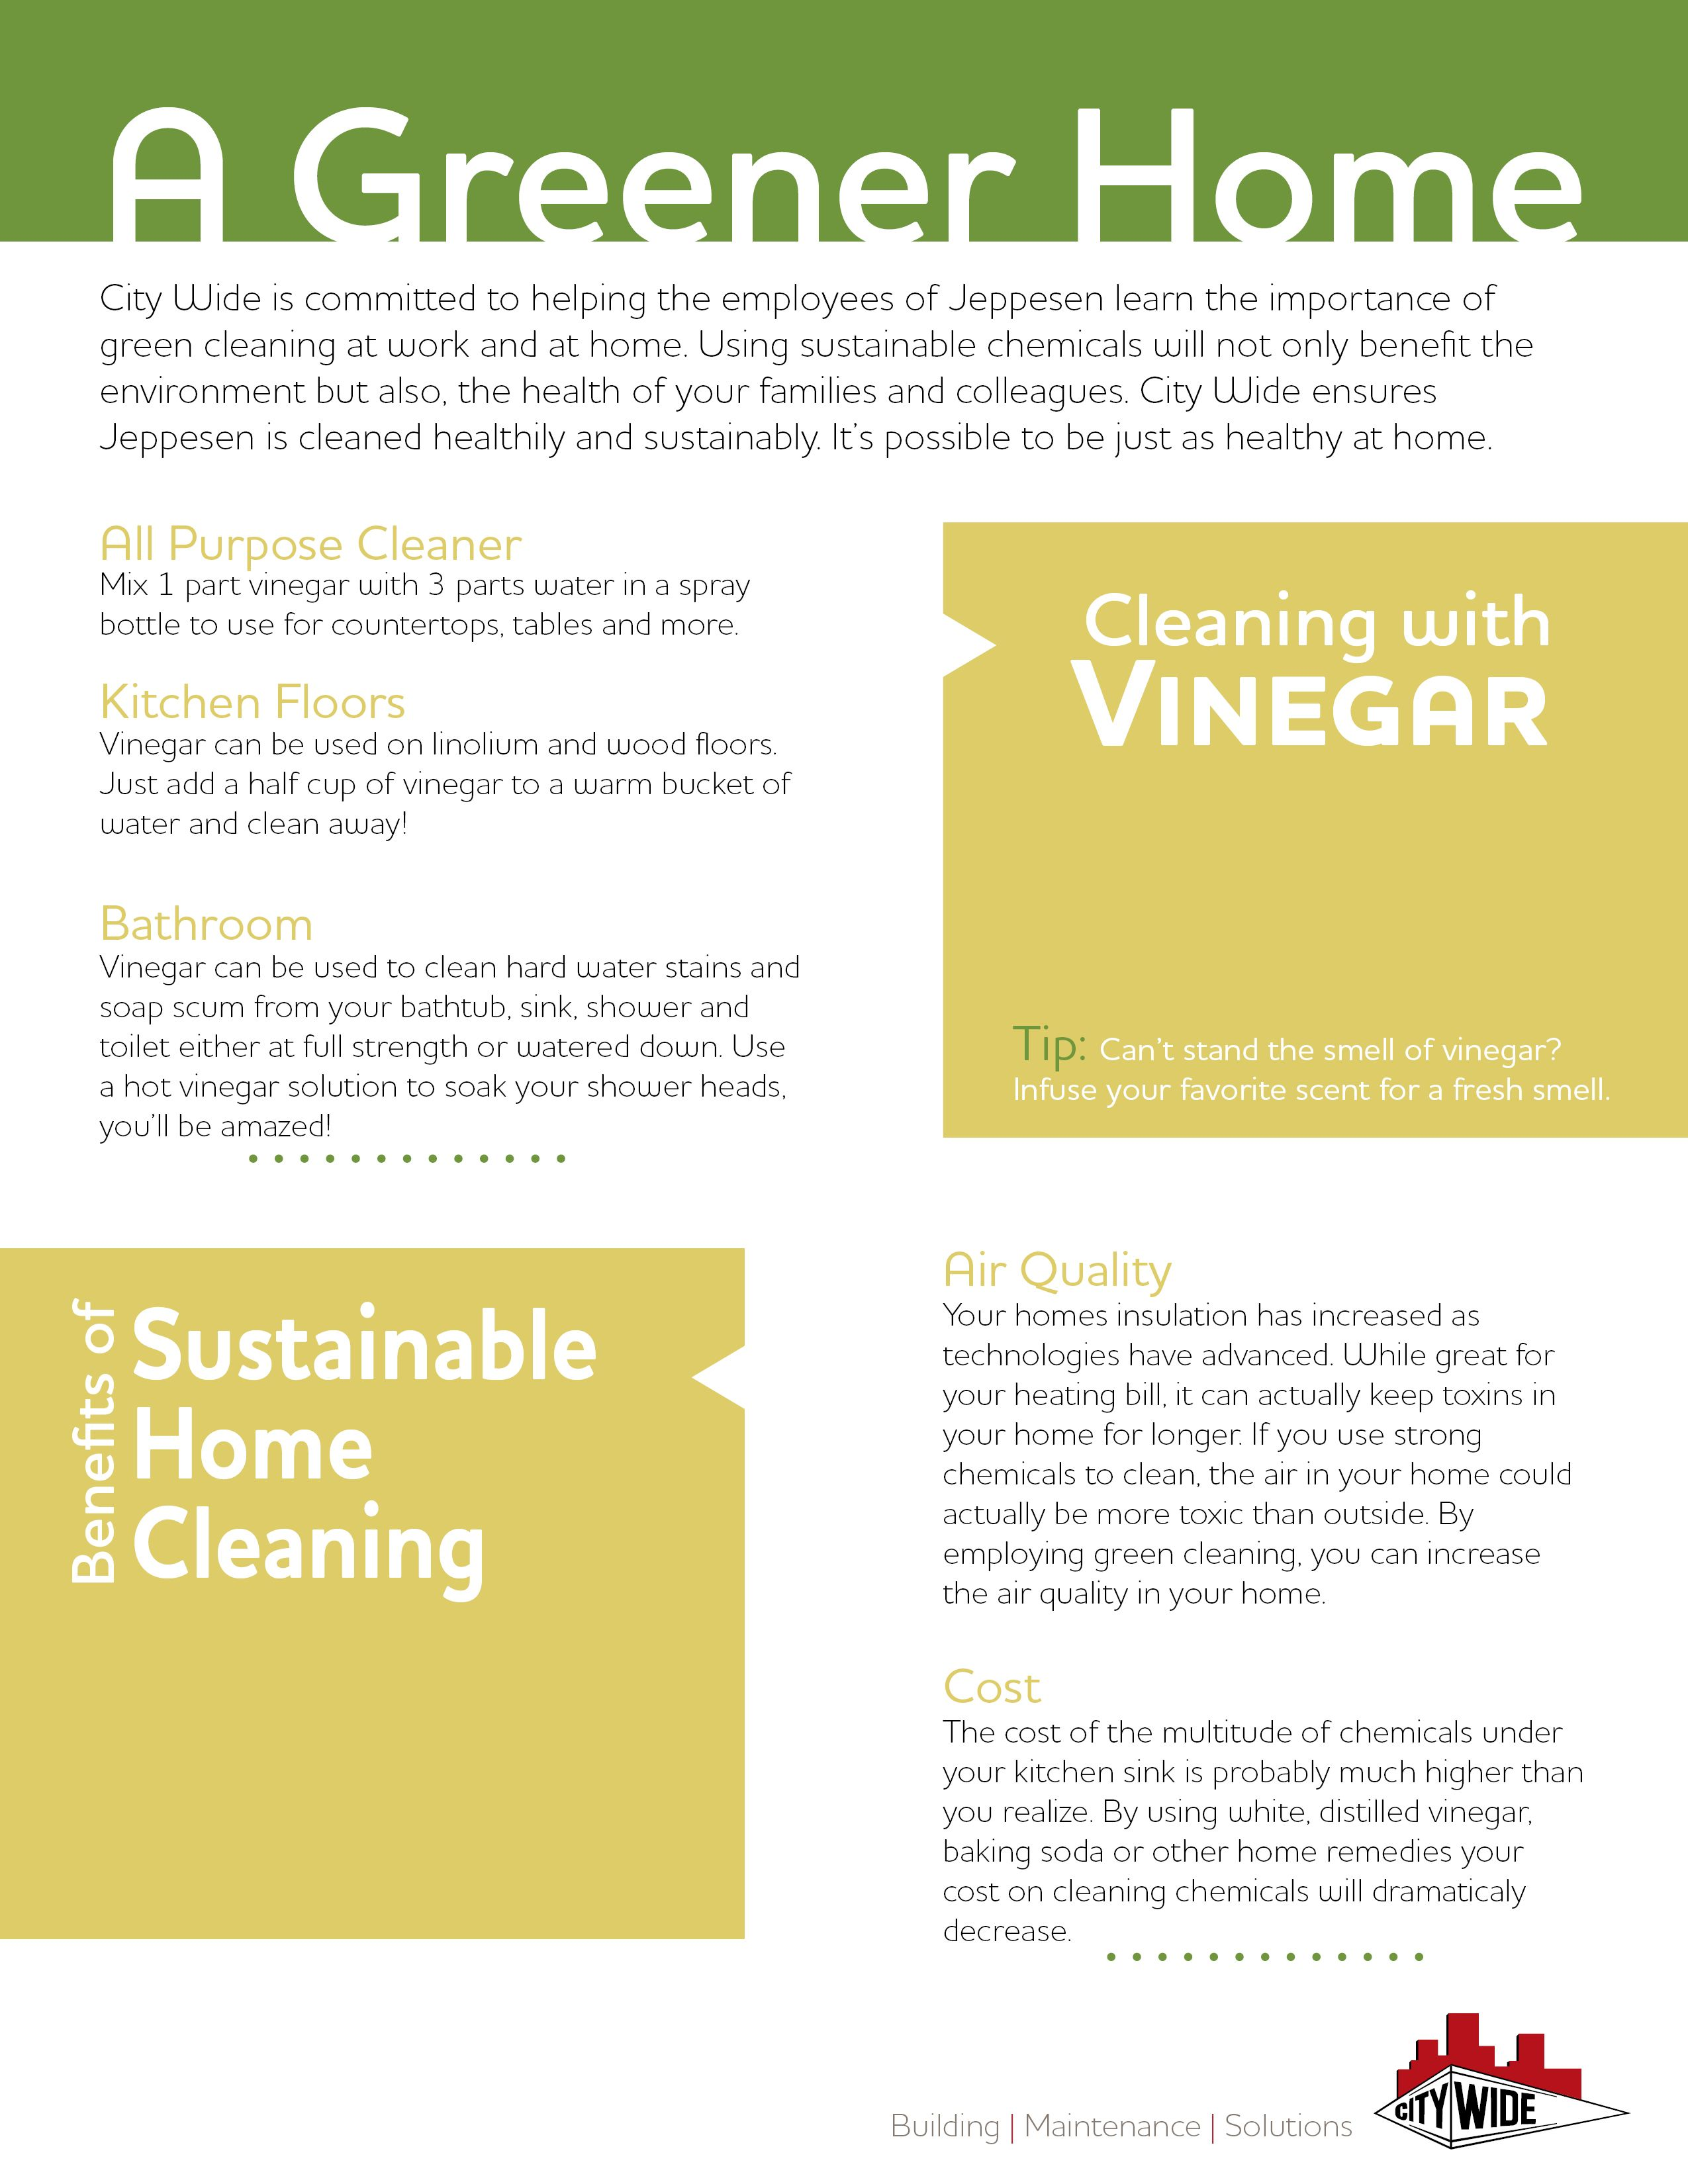 Home cleaning tips - Google Search | Green Living | Pinterest on new construction cleaning, home insurance tips, home coffee tips, real estate tips, home handyman tips, home construction tips, home energy tips, landscaping tips, home organizing tips, home packing tips, home care tips, travel tips, house cleaning, home repair tips, home gardening tips, home management tips, home fitness tips, home finishing tips, home cooling tips, home organization, home heating tips, home security tips, home recycling tips, home inspection tips,